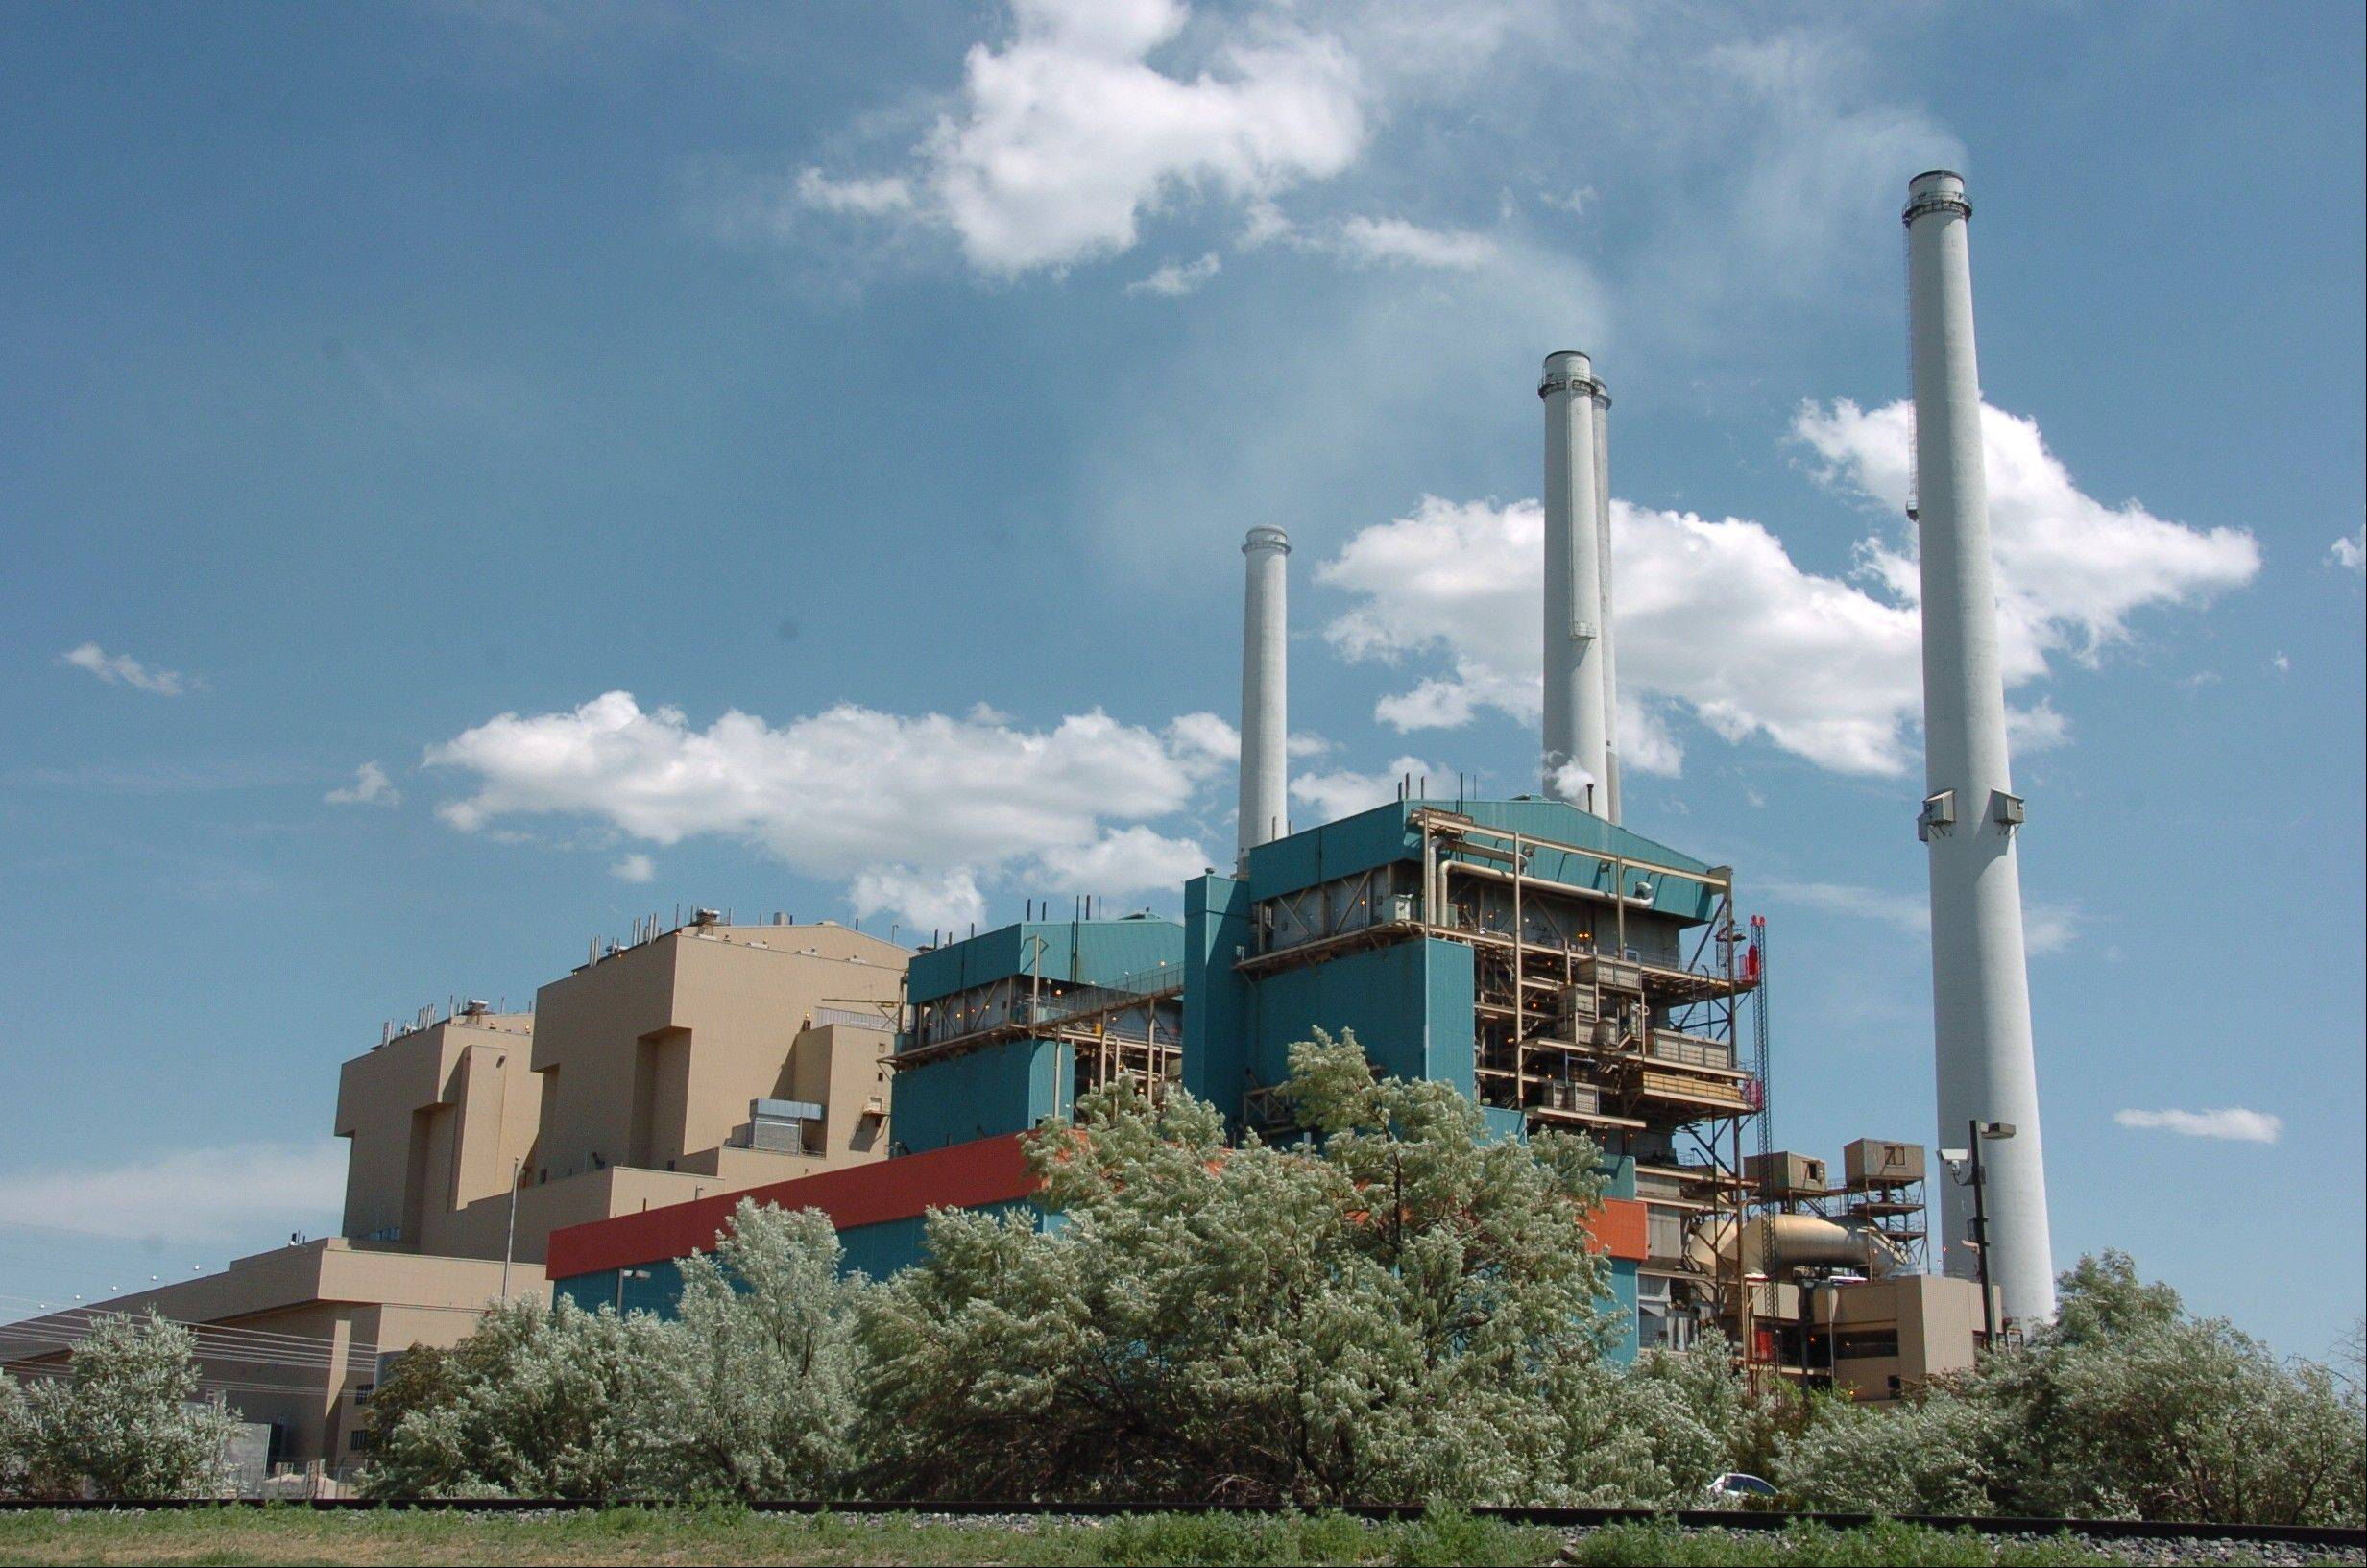 This April 28, 2010 photo shows the Colstrip Steam Electric Station, a coal-fired power plant in Colstrip, Mont. Plants such as Colstrip, which produces more than 15 million tons of carbon dioxide annually, could face new regulations under President Barack Obama's latest climate change proposal. The coal industry, which was hoping for a rebound in 2013 after struggling to stay competitive in recent years, is back on the defensive after President Barack Obama renewed calls for carbon dioxide reductions from new and existing power plants.